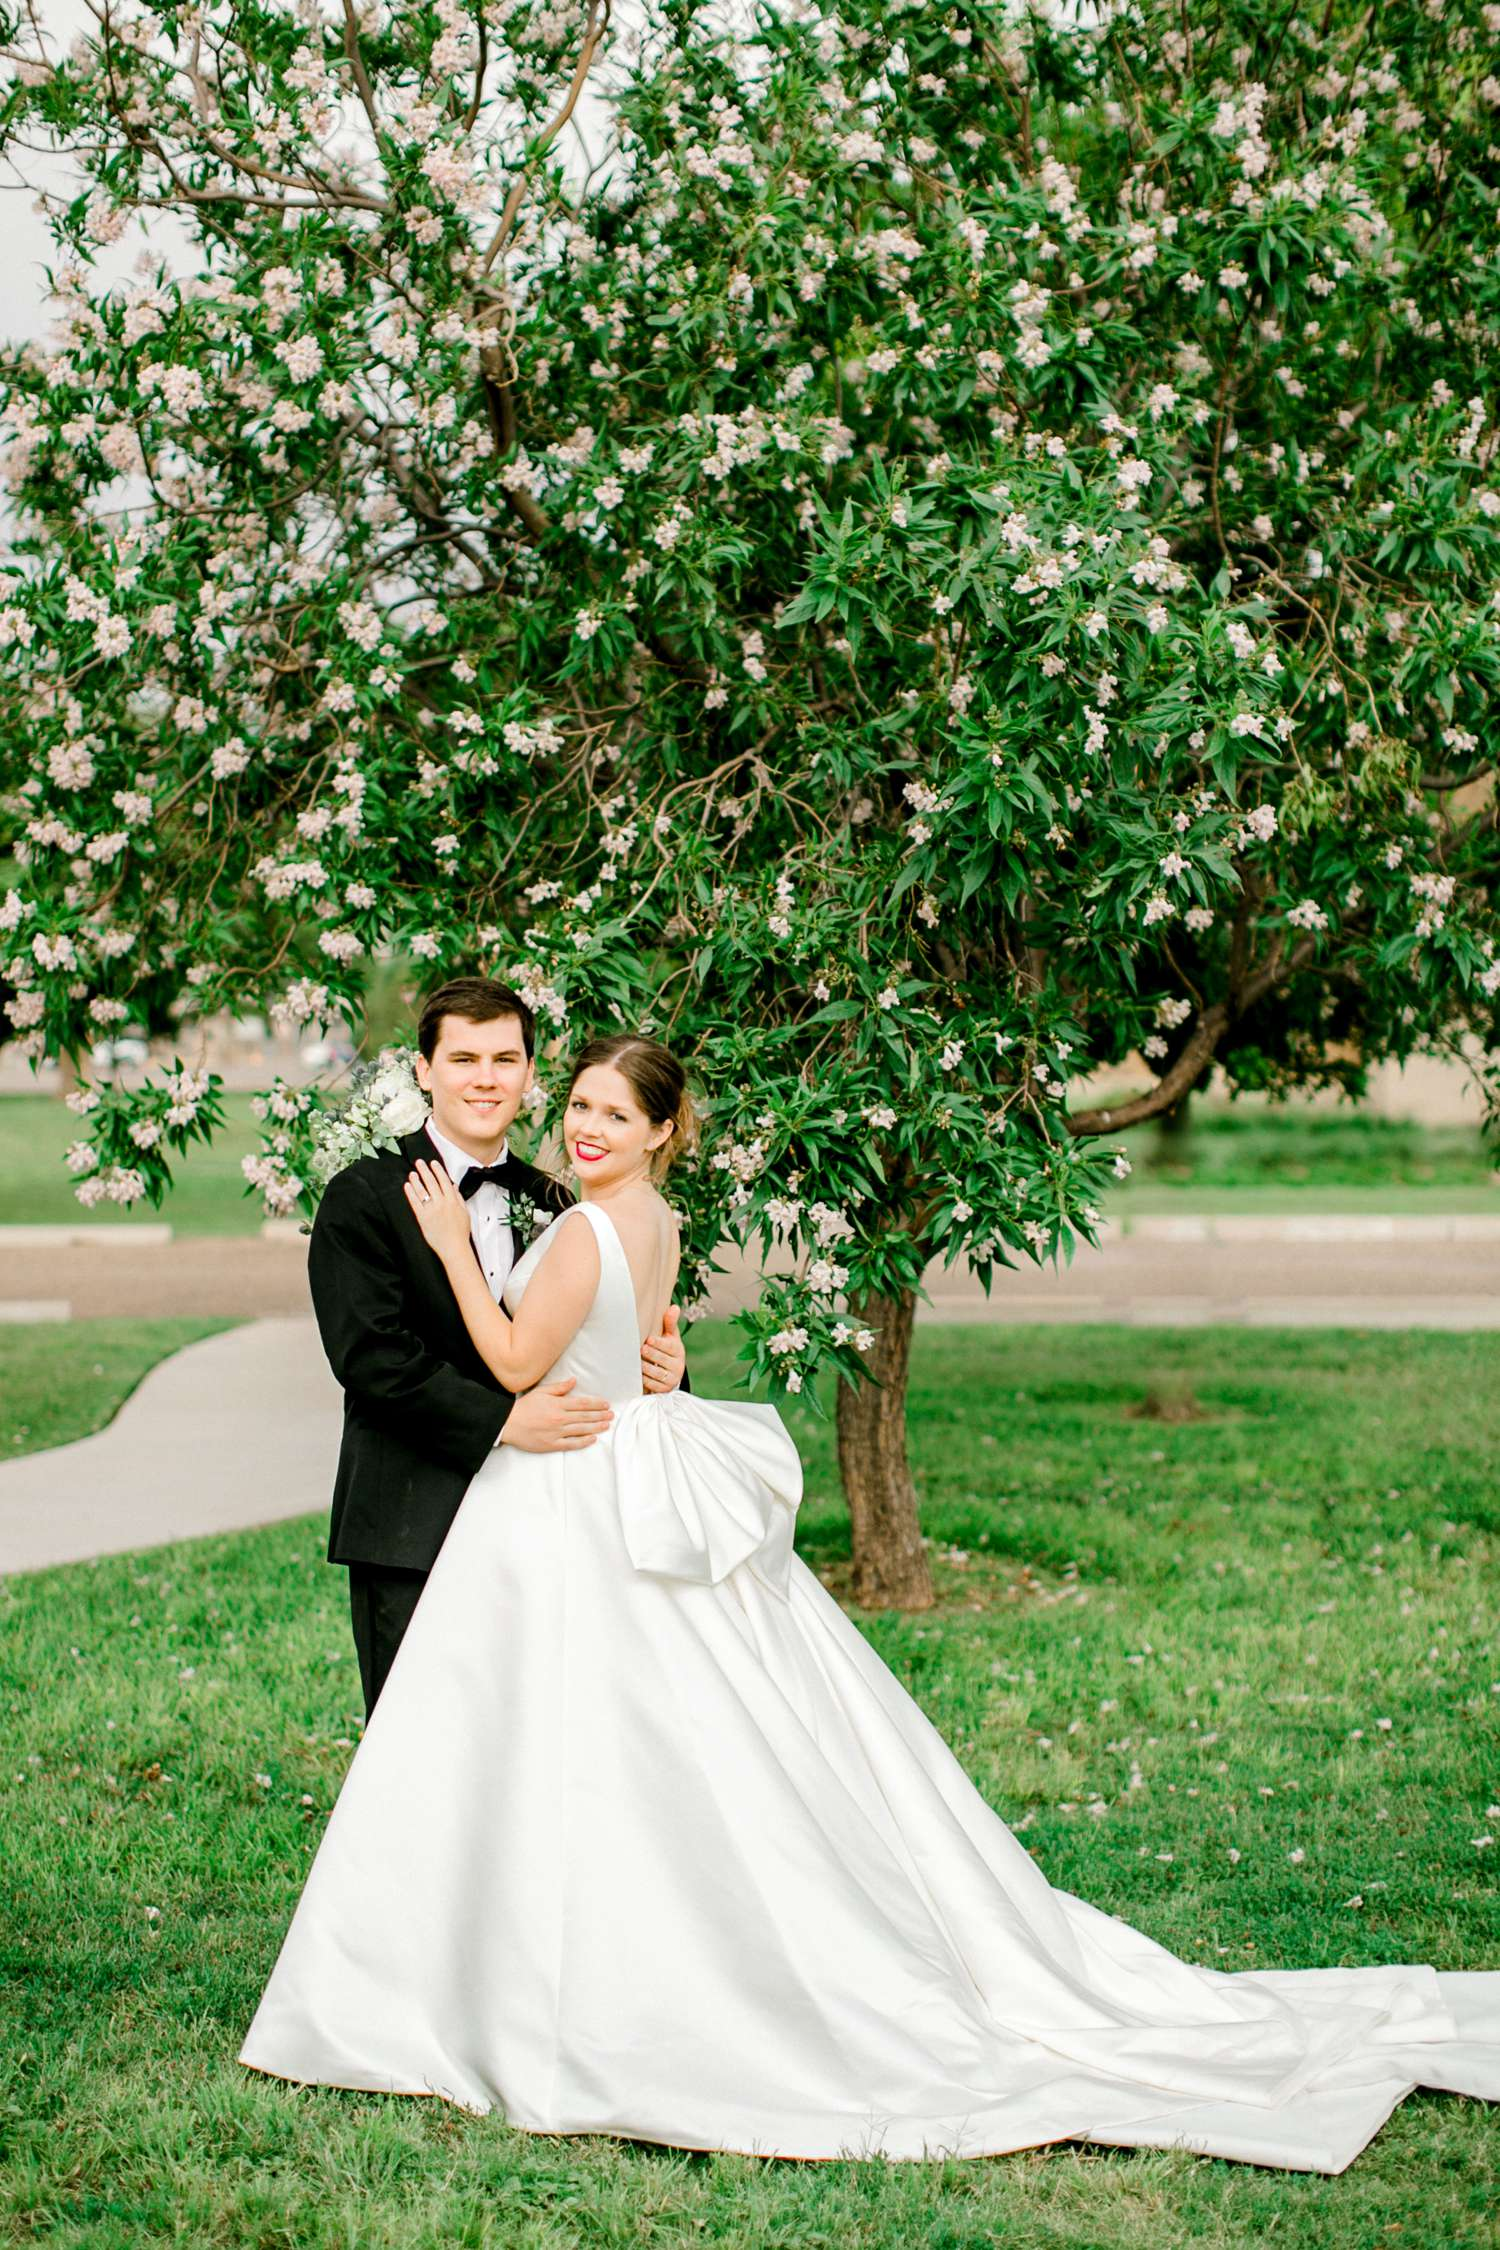 HANNAH+CRAIG+CHILDS+TEXAS+TECH+WEDDING+ALLEEJ+LUBBOCK+PHOTOGRAPHER_0097.jpg